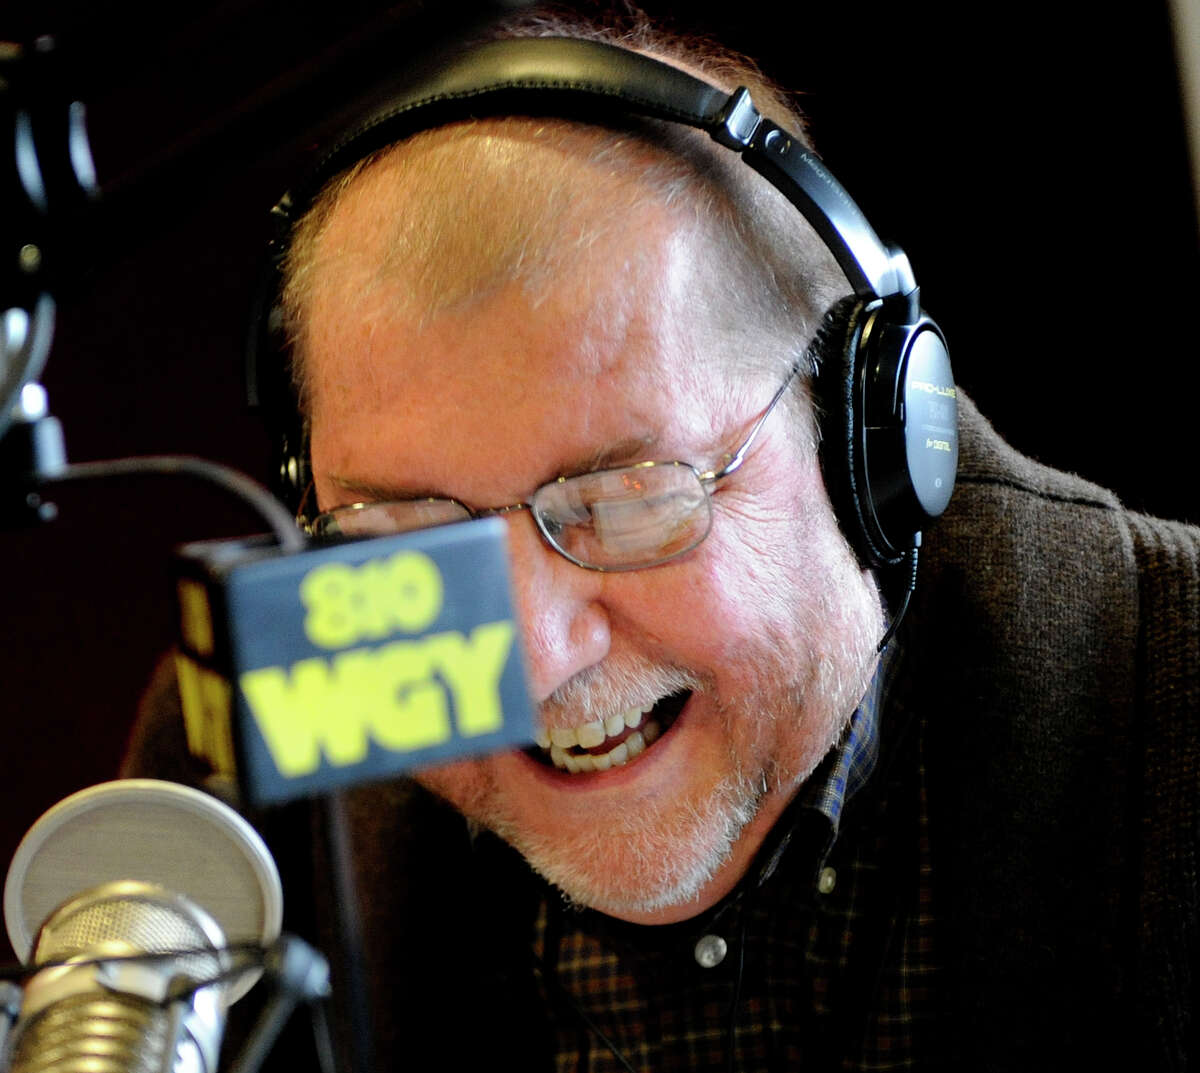 Radio personality Don Weeks enjoys a last laugh as he winds up his last moments after a thirty year career at WGY in Latham December 3, 2010. (Skip Dickstein / Times Union)